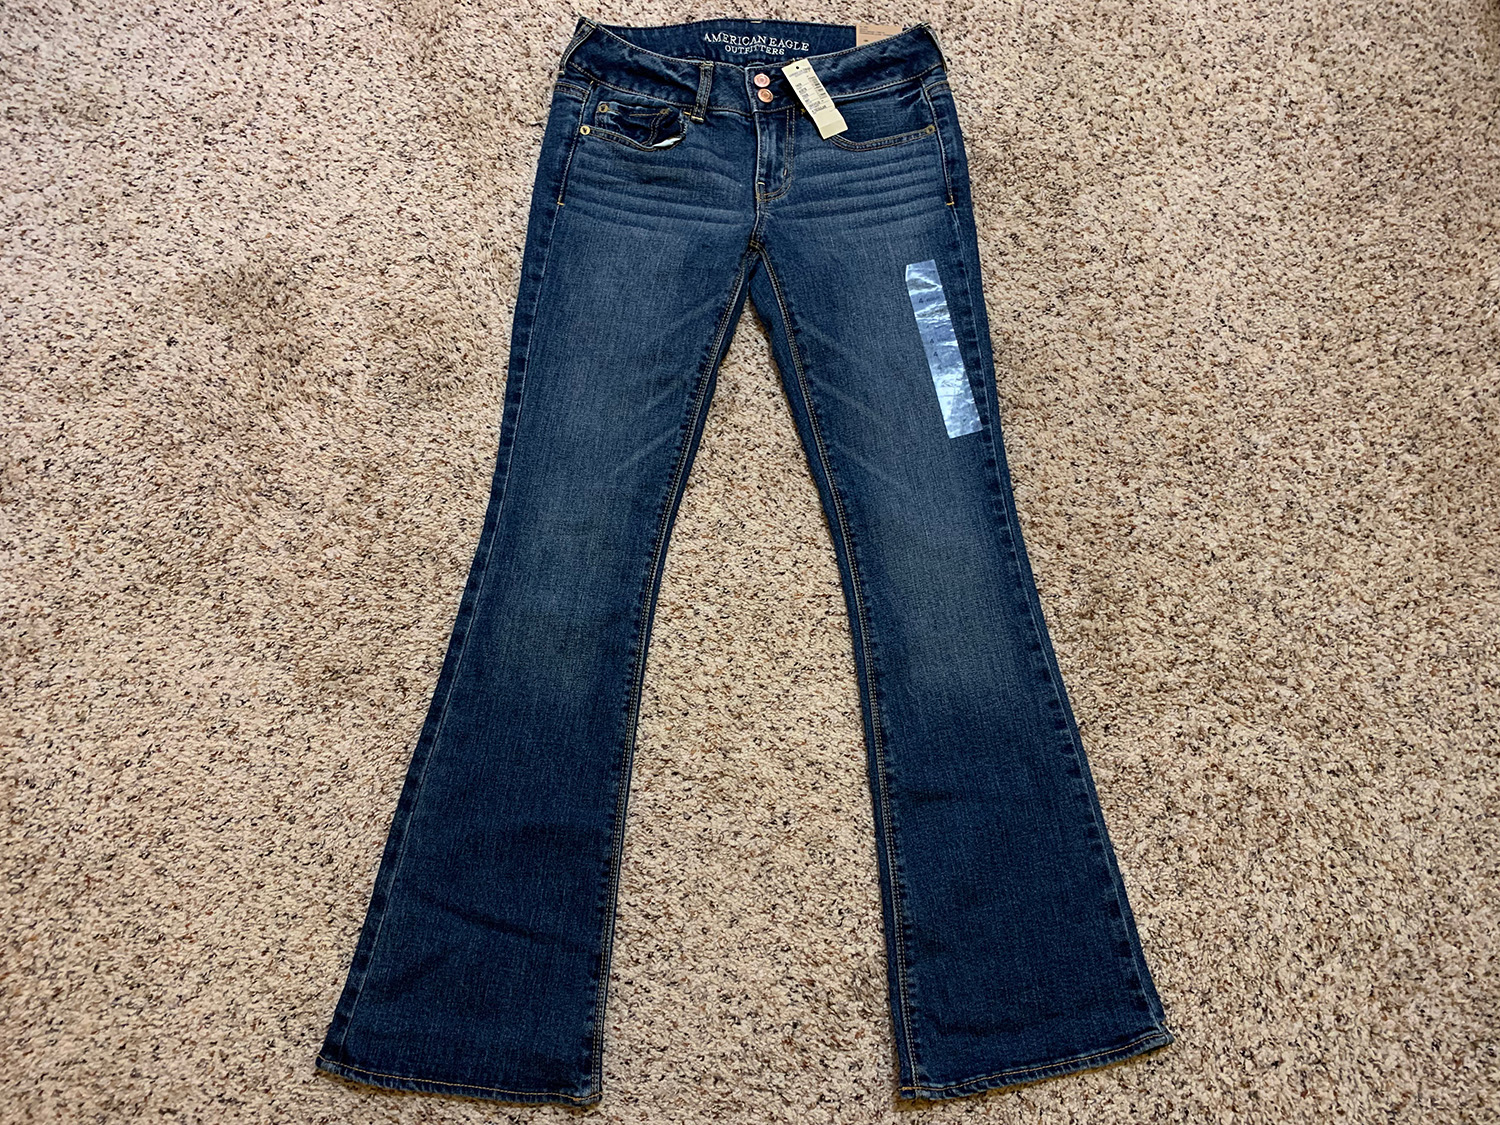 American Eagle Womens Artist Stretch Jeans Size 4 Regular at The MenuGem Web Store